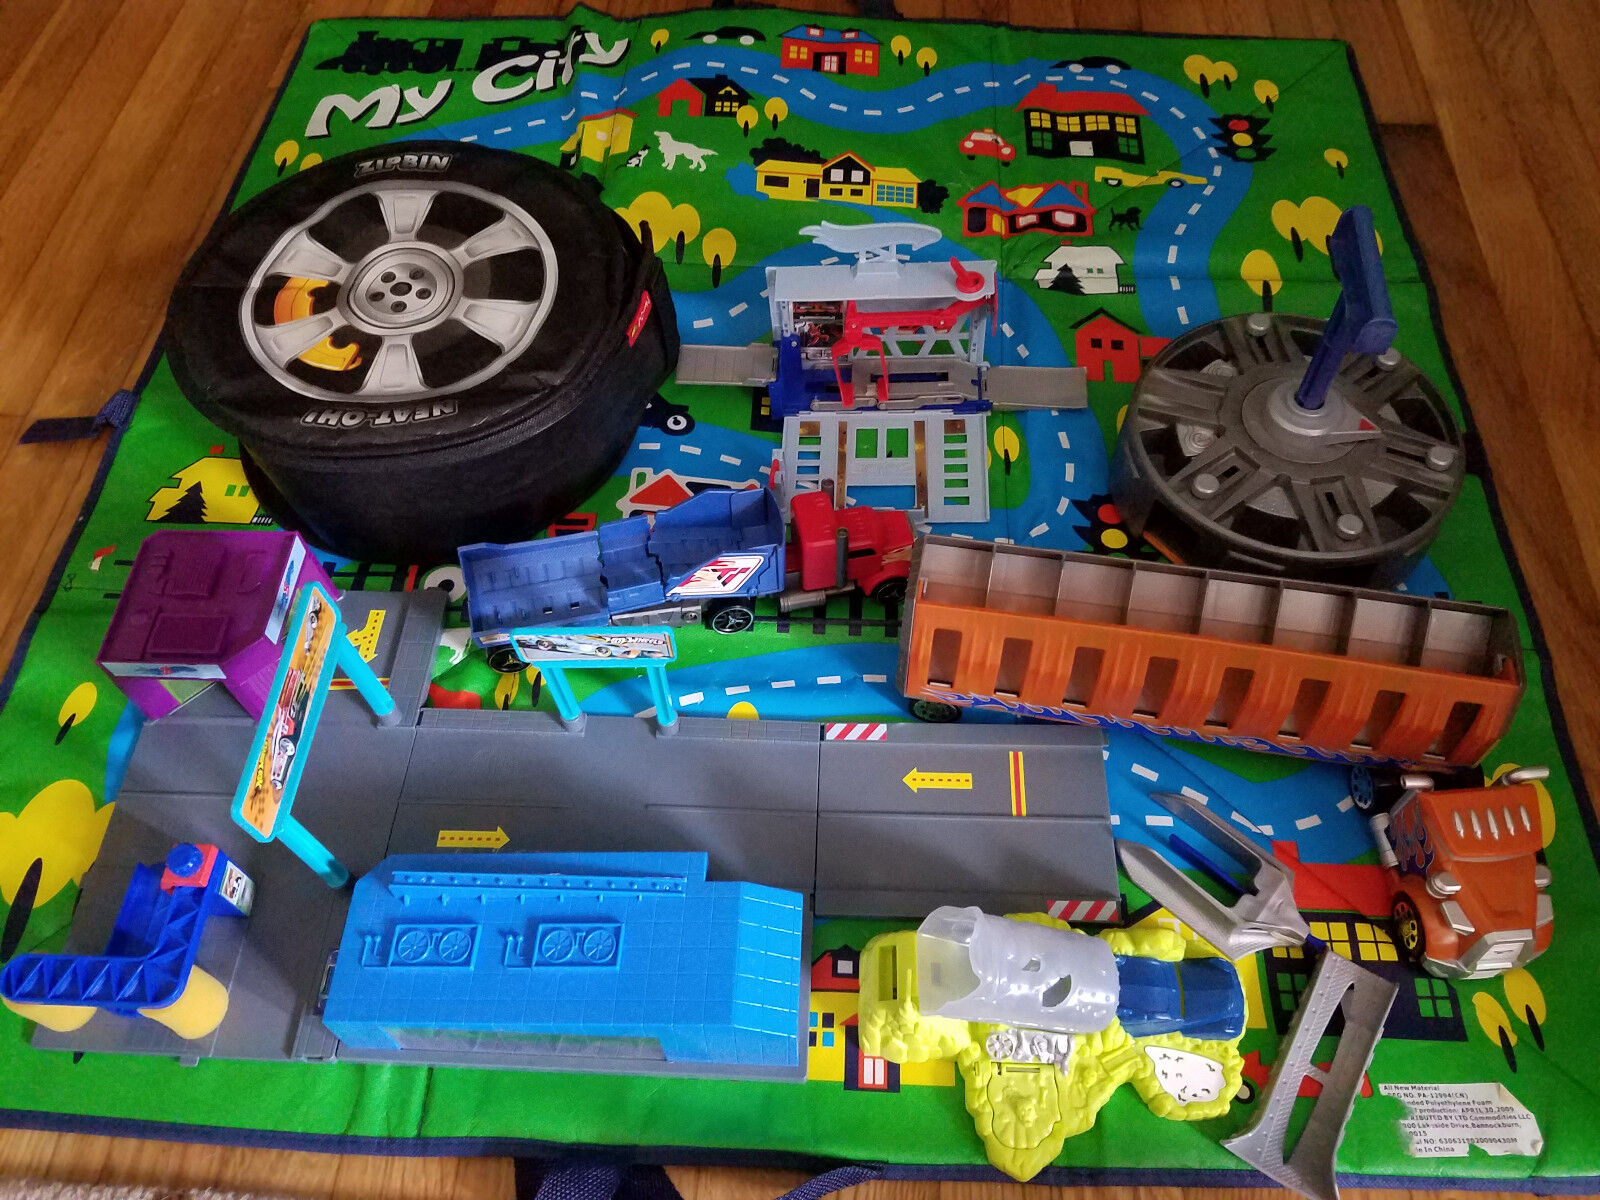 Hot Wheels Lot Zipbin, Launchers, Carrier, Take-along Service Station, Playsets